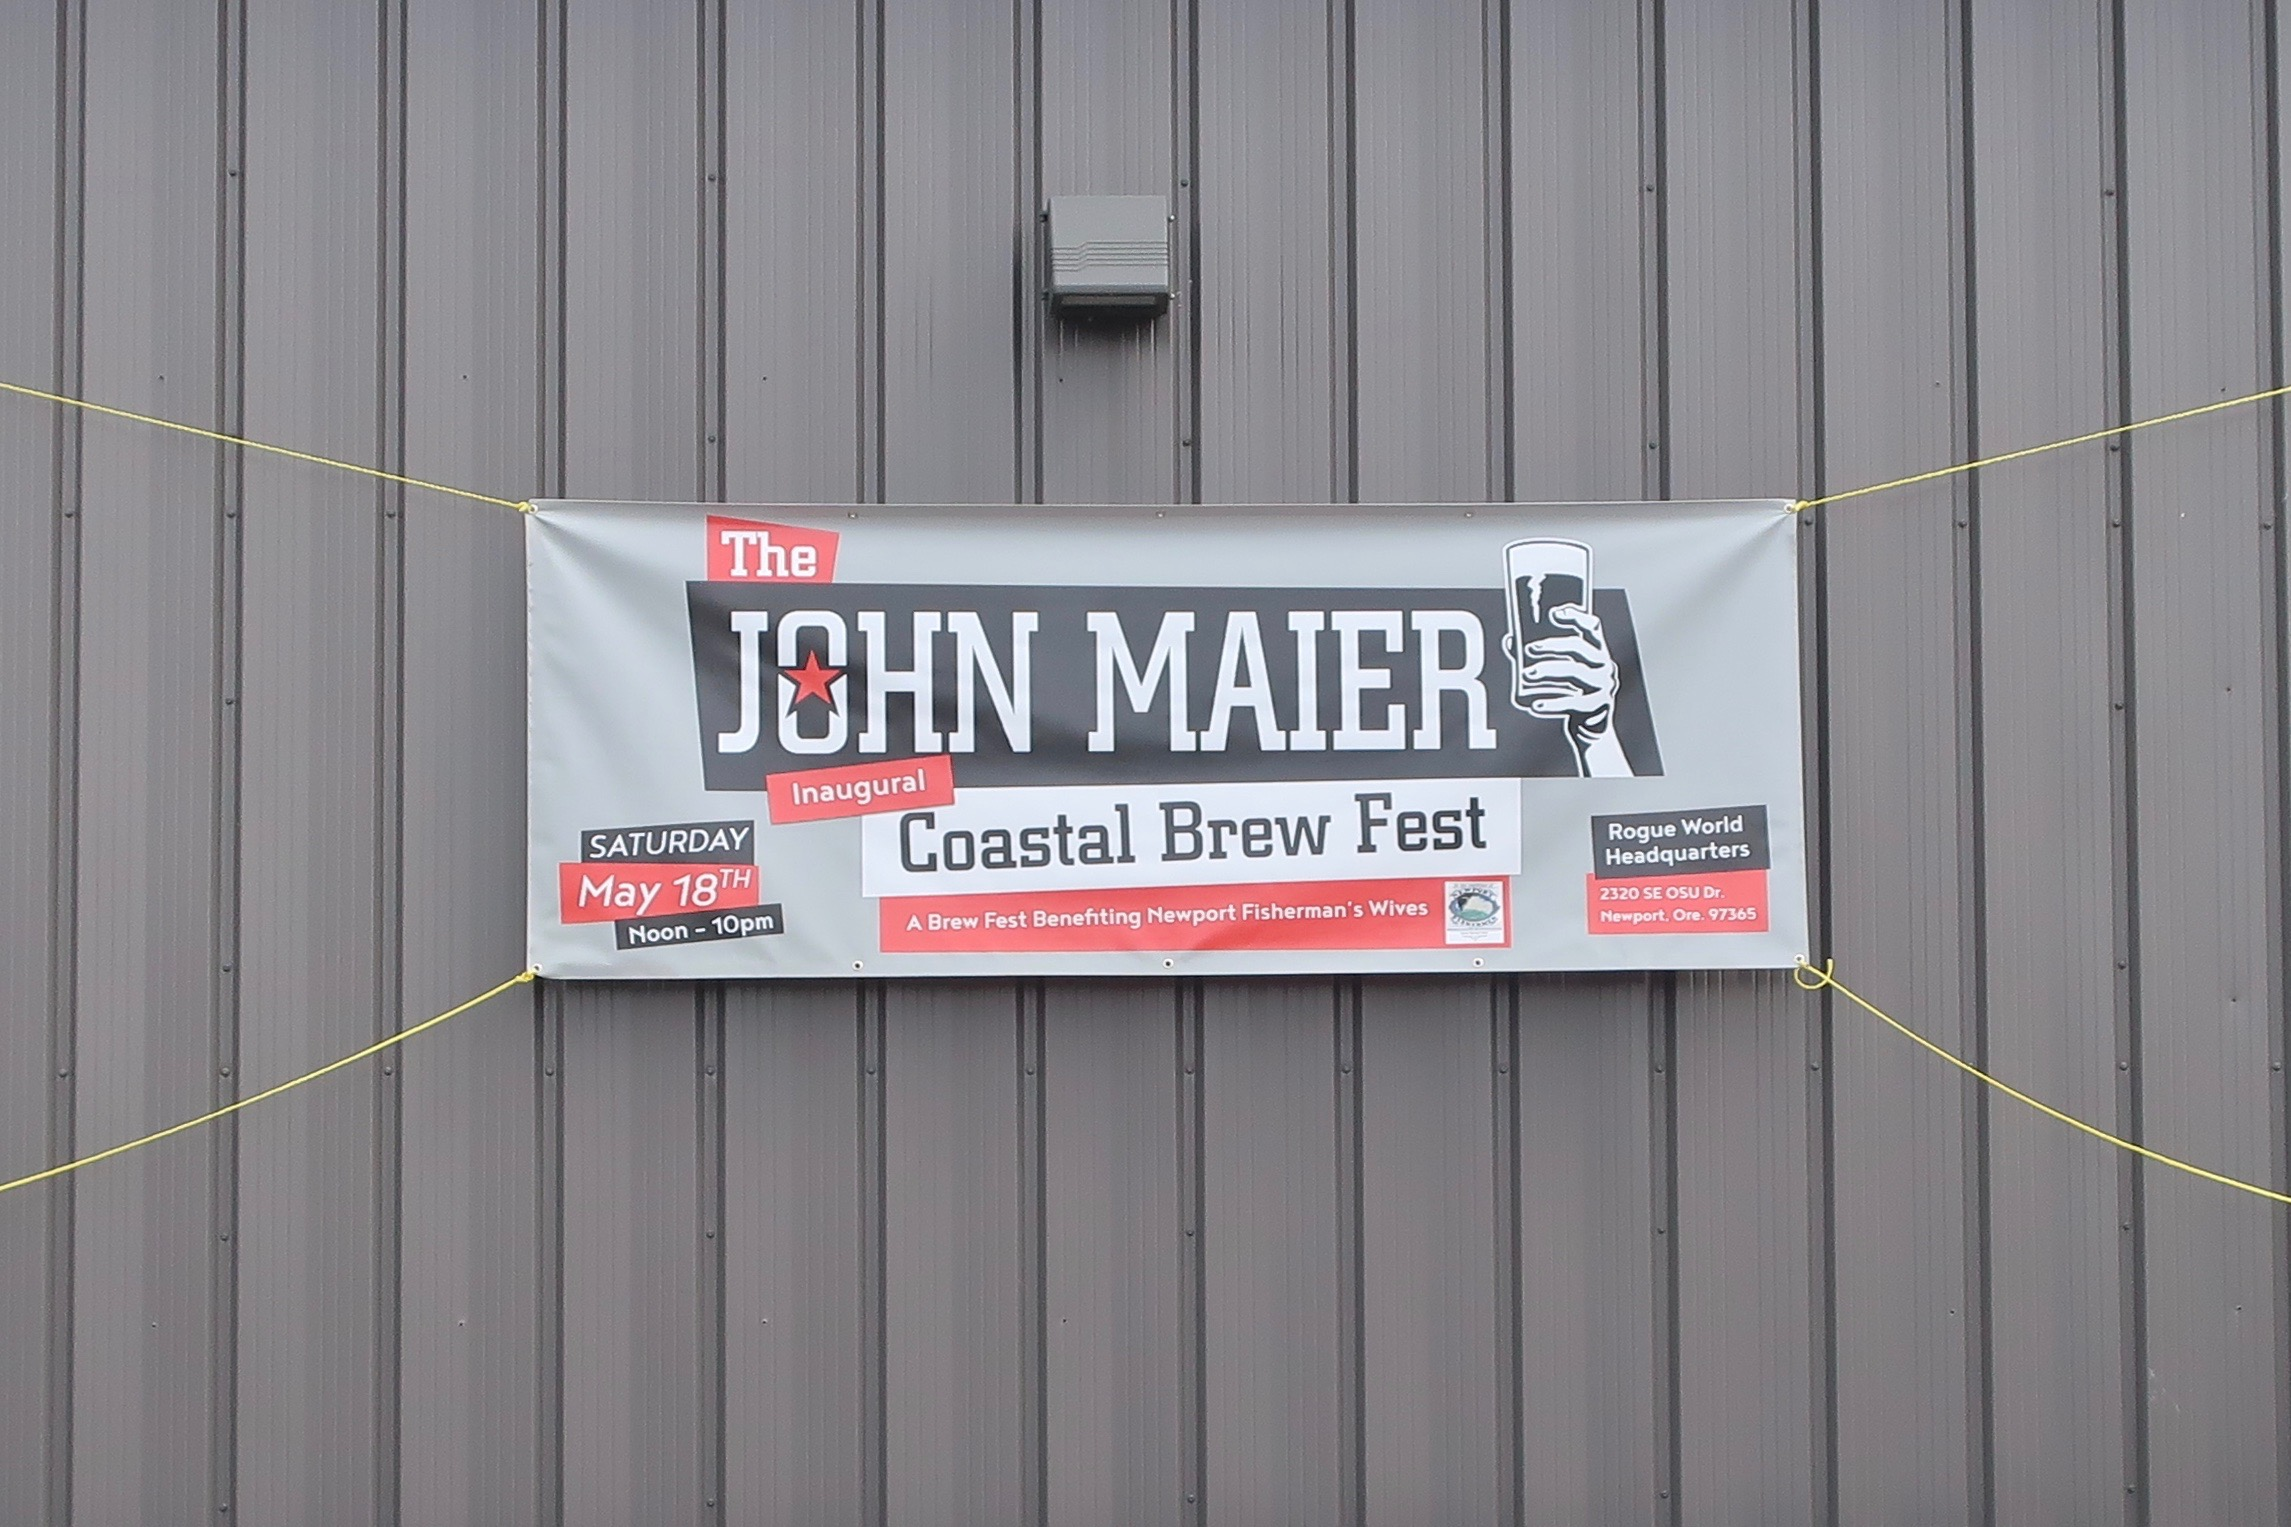 The inaugural John Maier Coastal Brew Fest took place on May 18, 2019 in Newport, Oregon celebraing 30+ years of John Maier at Rogue Ales.